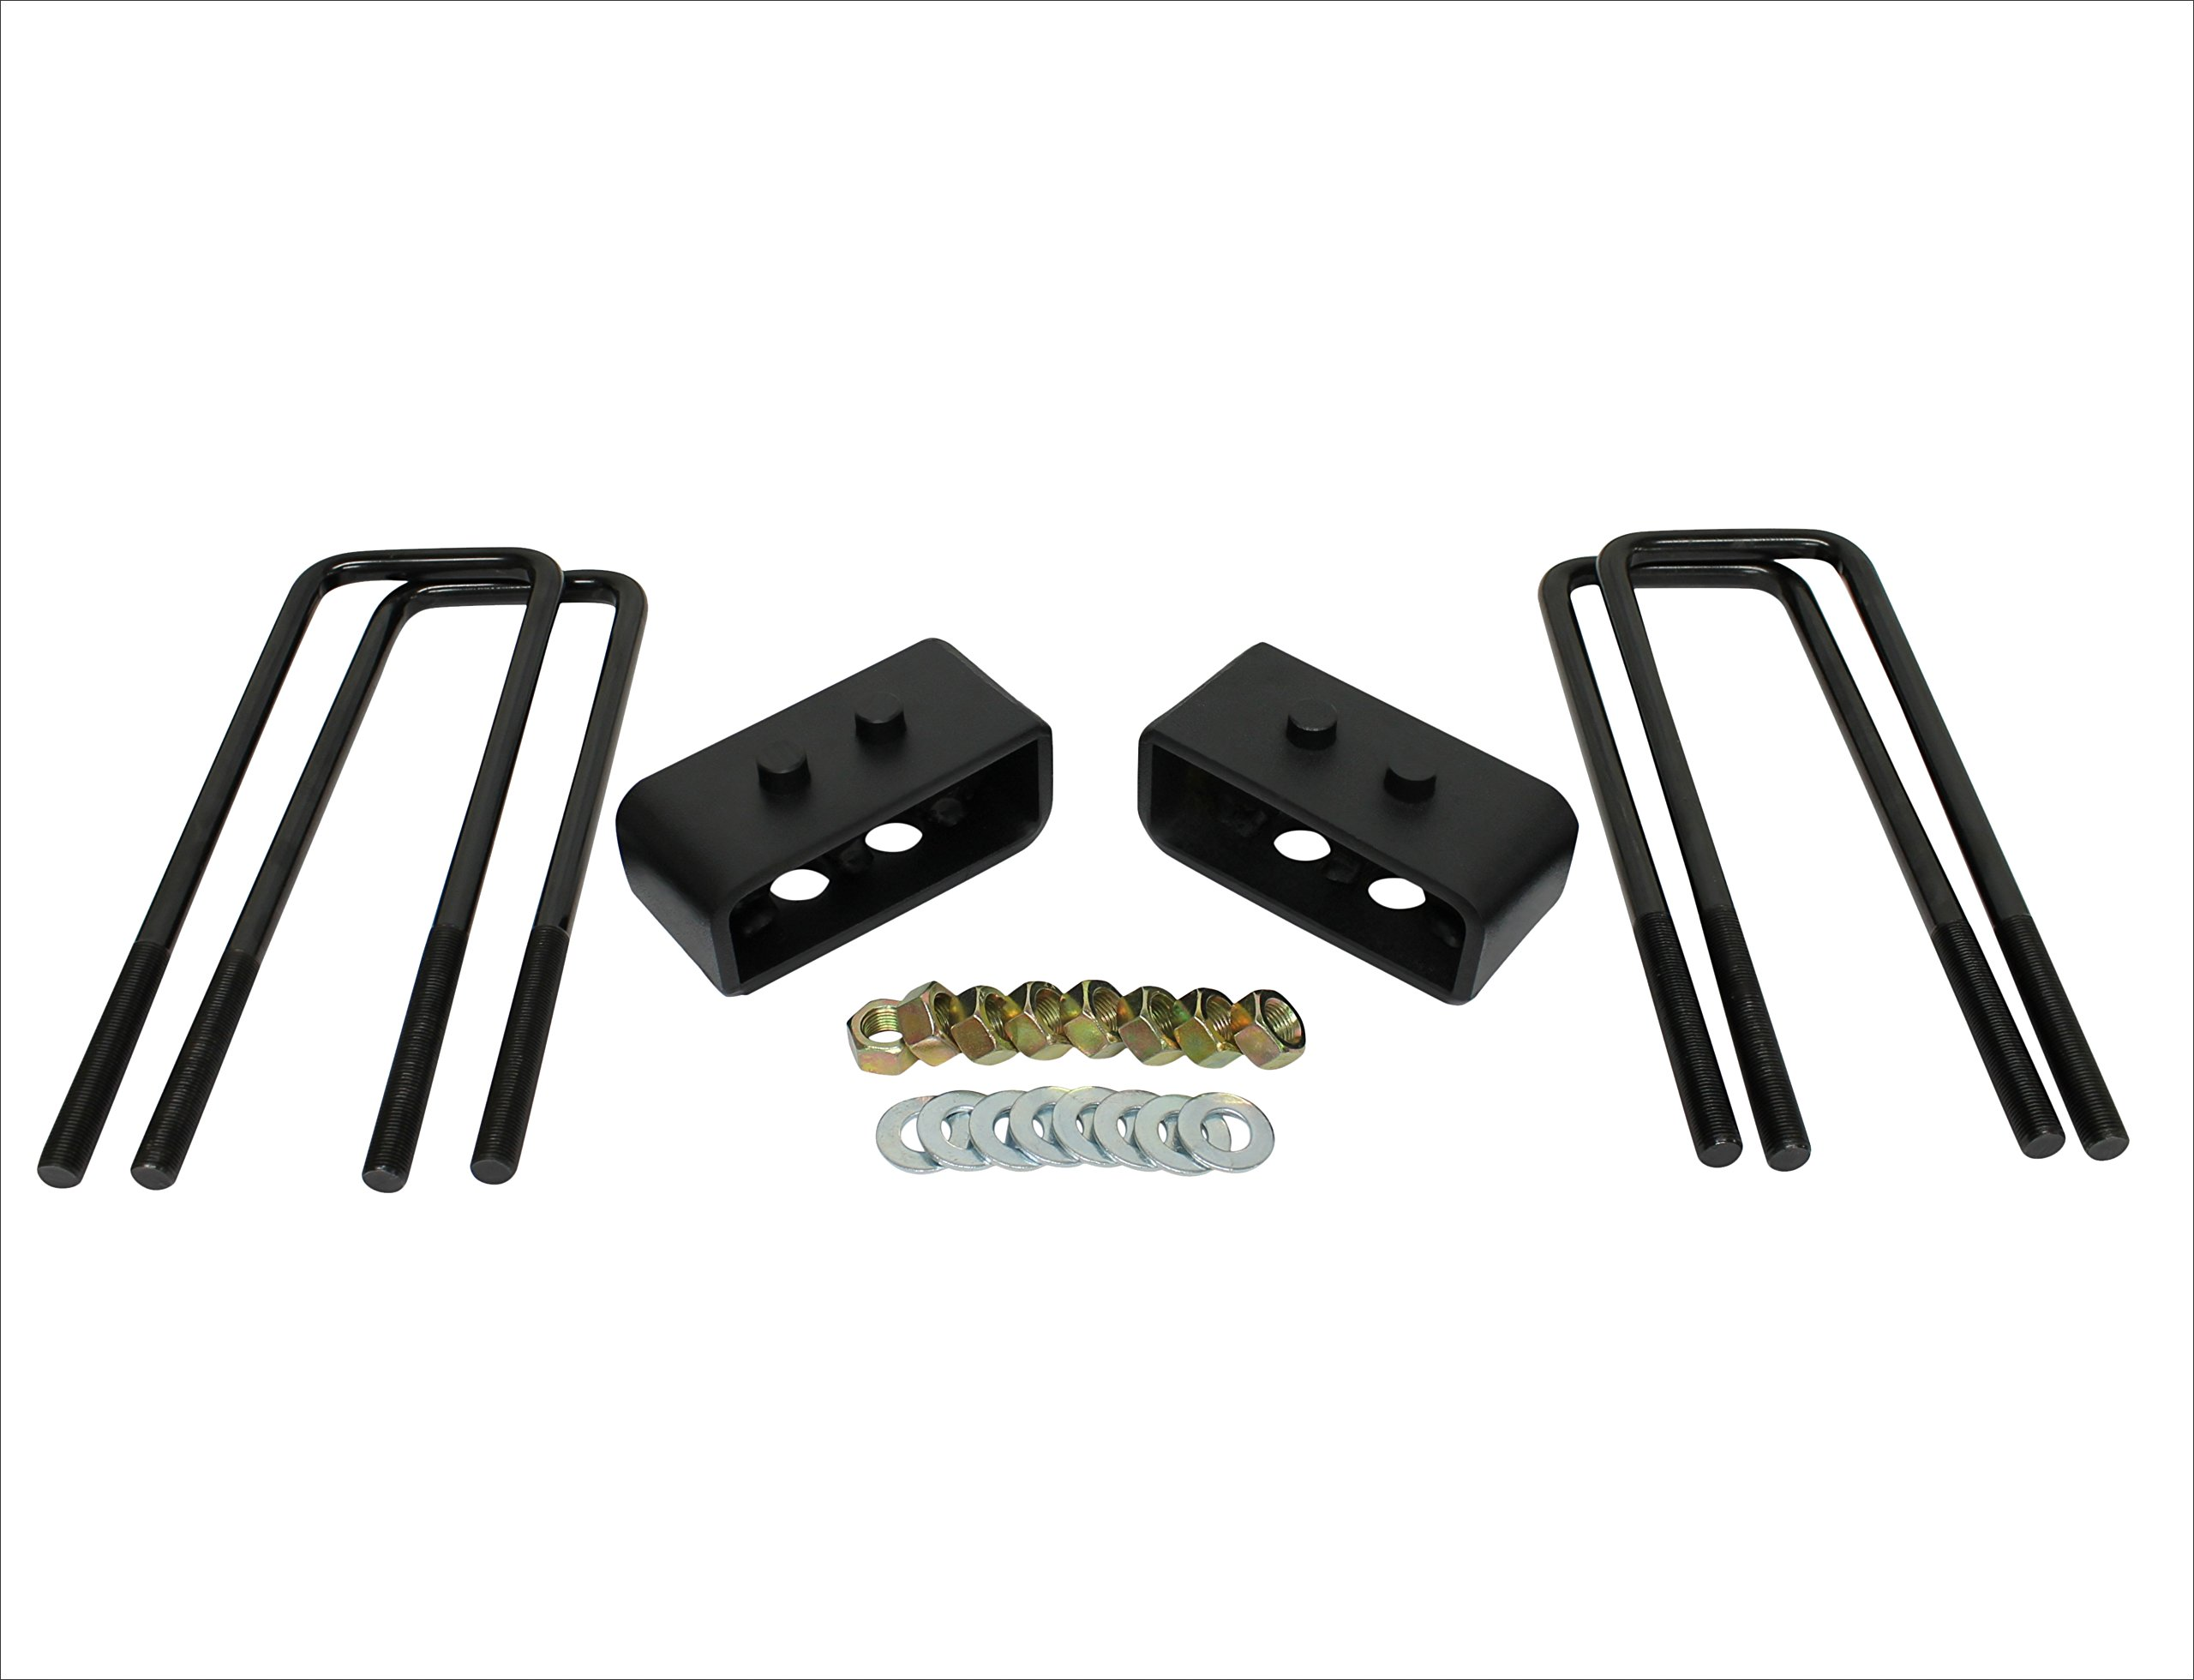 MotoFab Lifts F150-2R 2'' Rear lift kit for 2004-2017 FORD F150 2WD 4WD